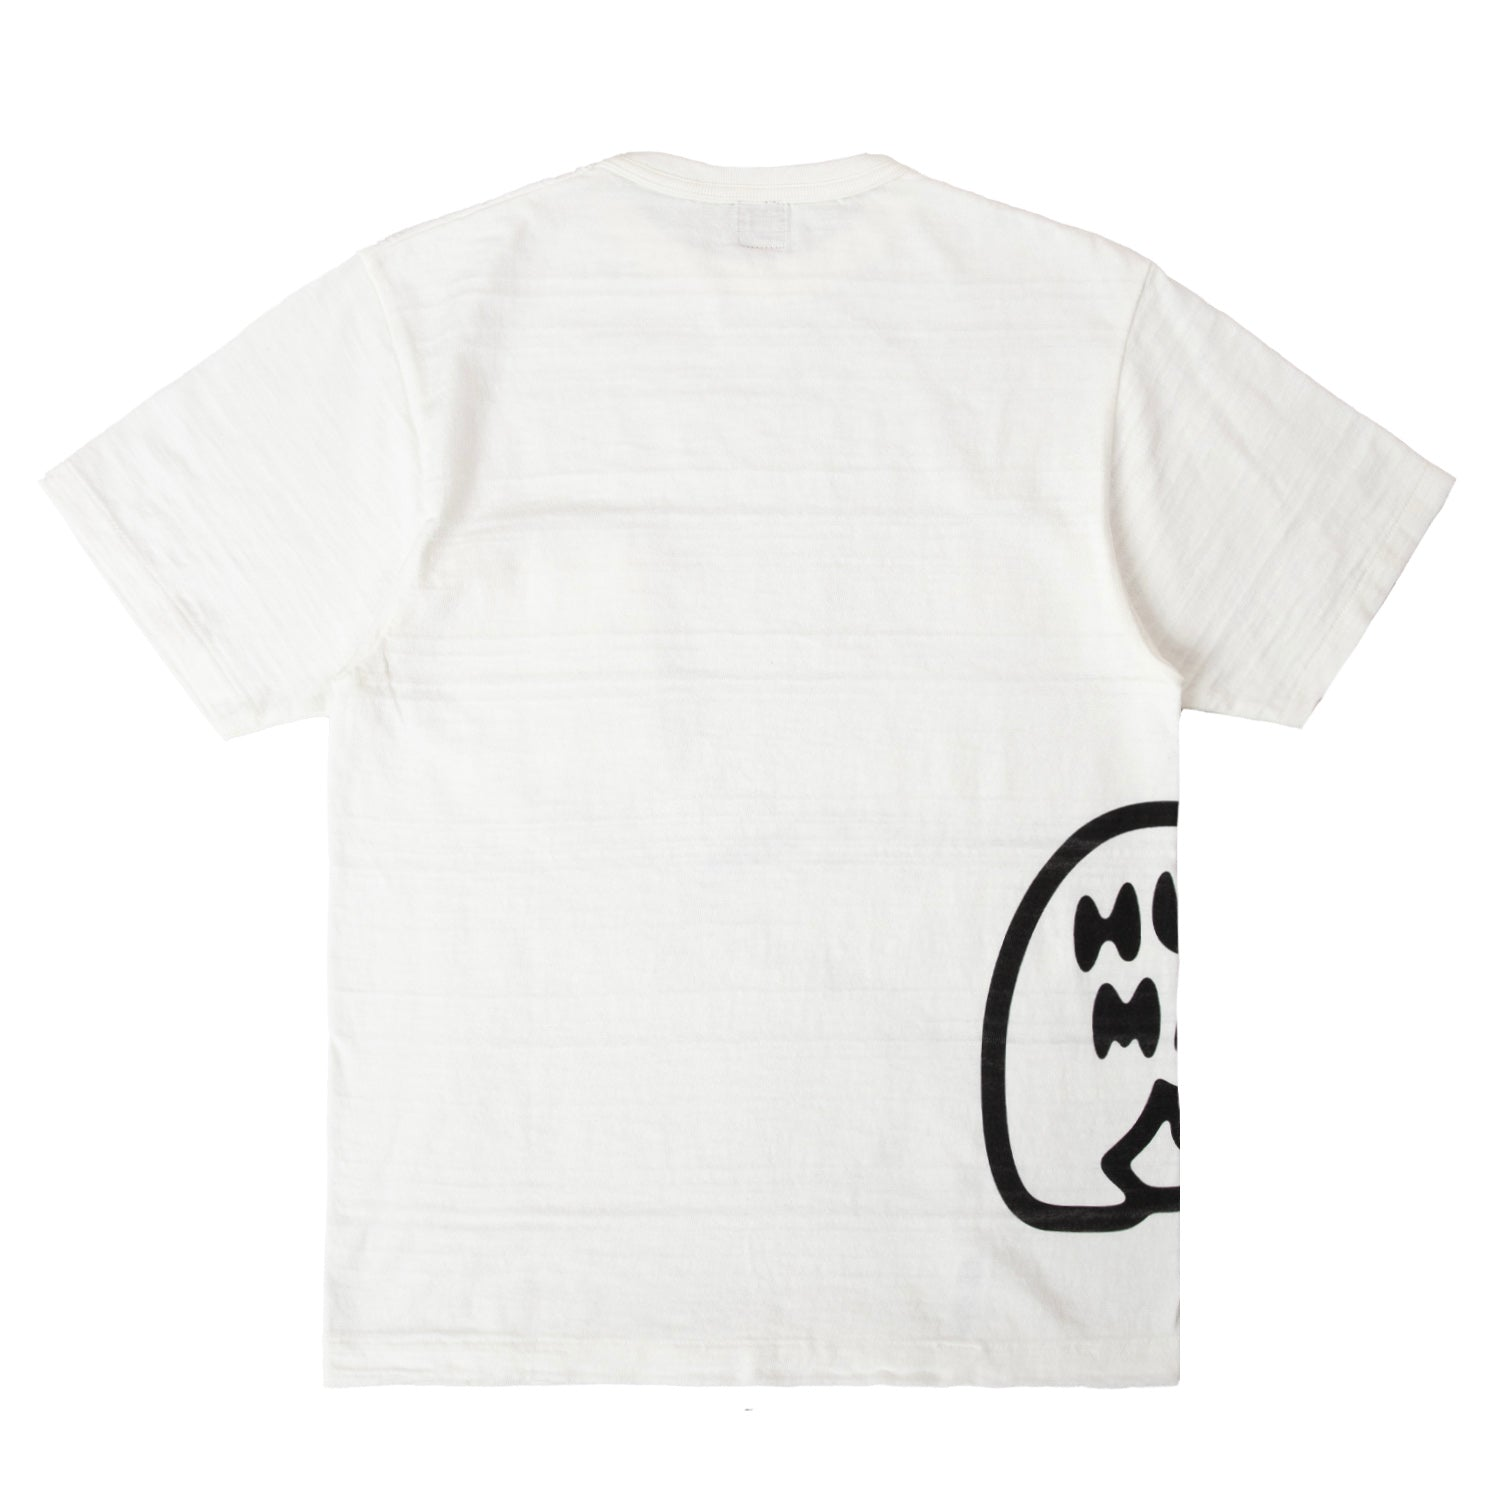 POCKET T-SHIRT #2